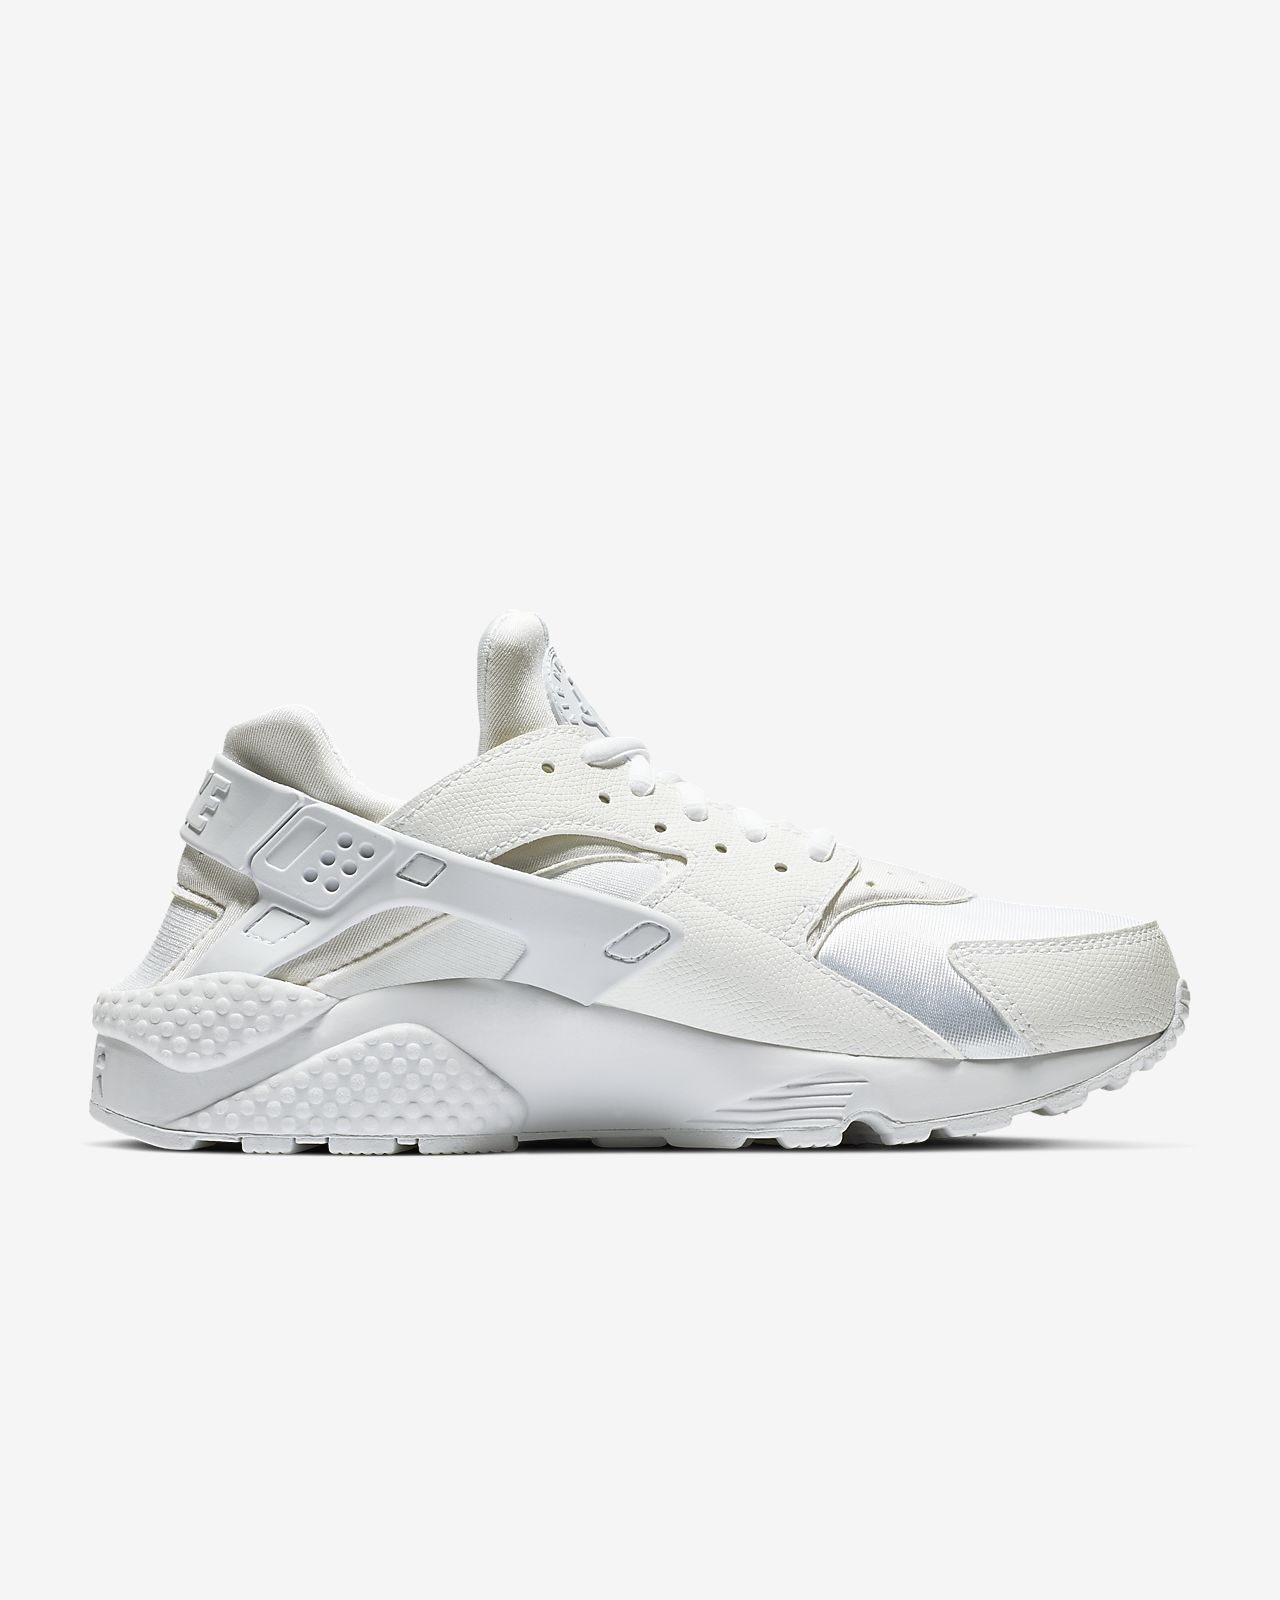 Nike Air Nike Huarache Women's Shoe Huarache Women's Air MVSzULqpG